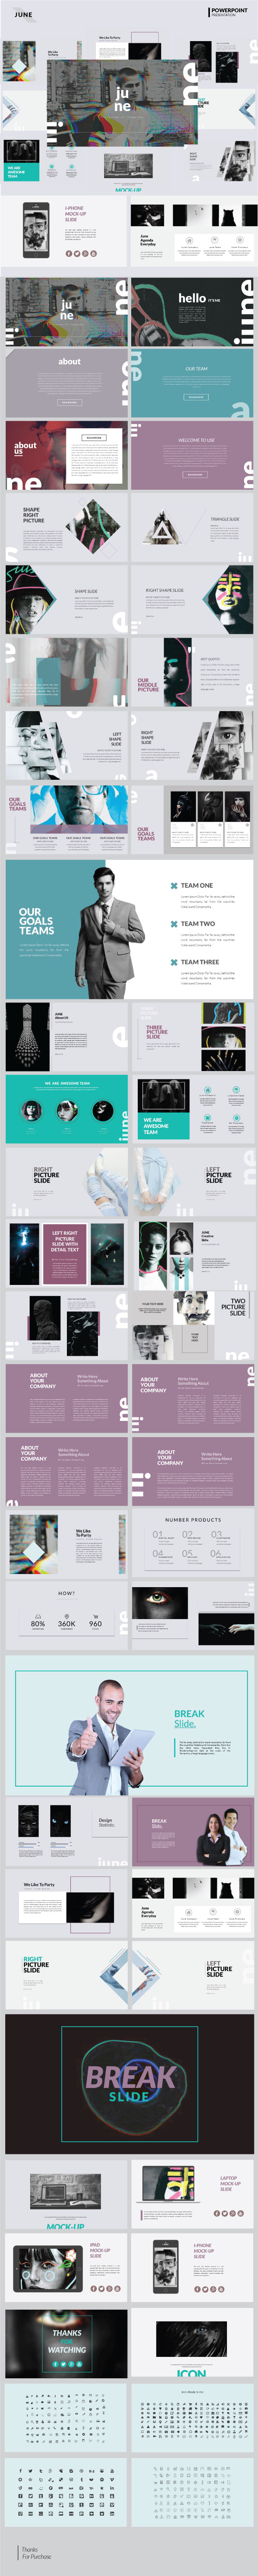 June - Creative Presentation Template - PowerPoint Templates Presentation Templates